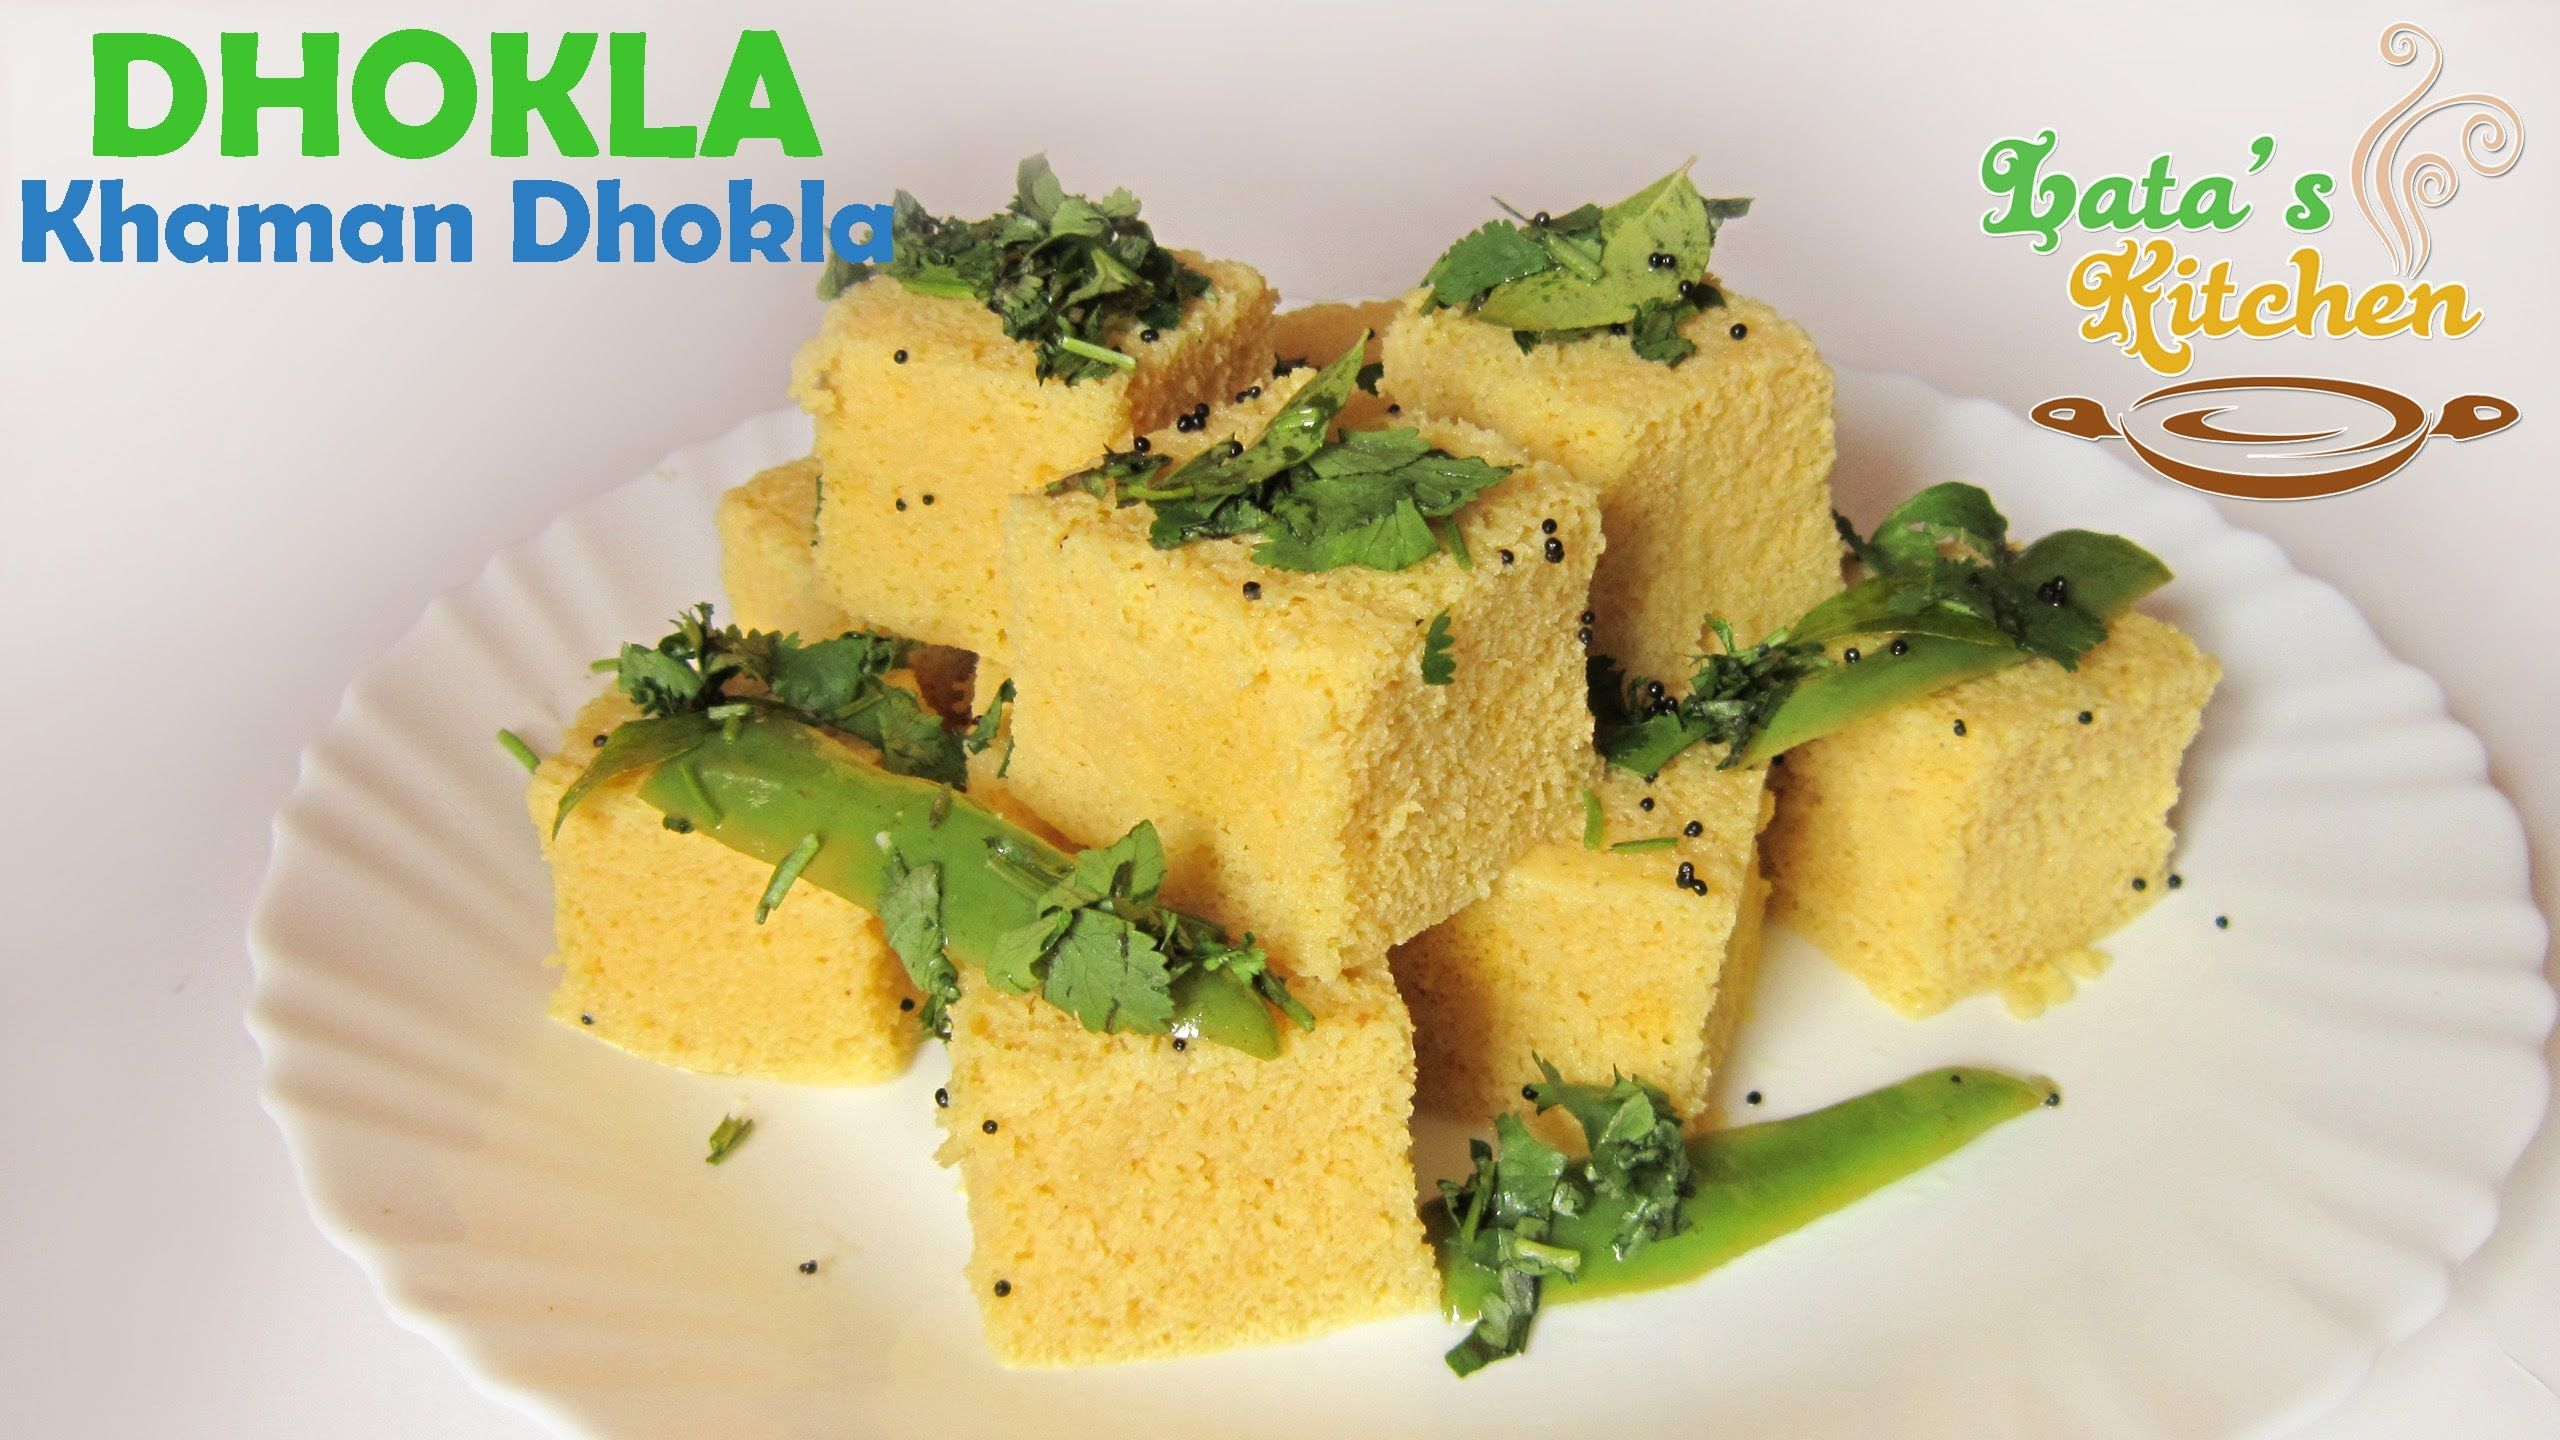 Dhokla instant khaman dhokla recipe video gujarati indian dhokla instant khaman dhokla recipe video gujarati indian vegetarian snack by lata jain forumfinder Gallery